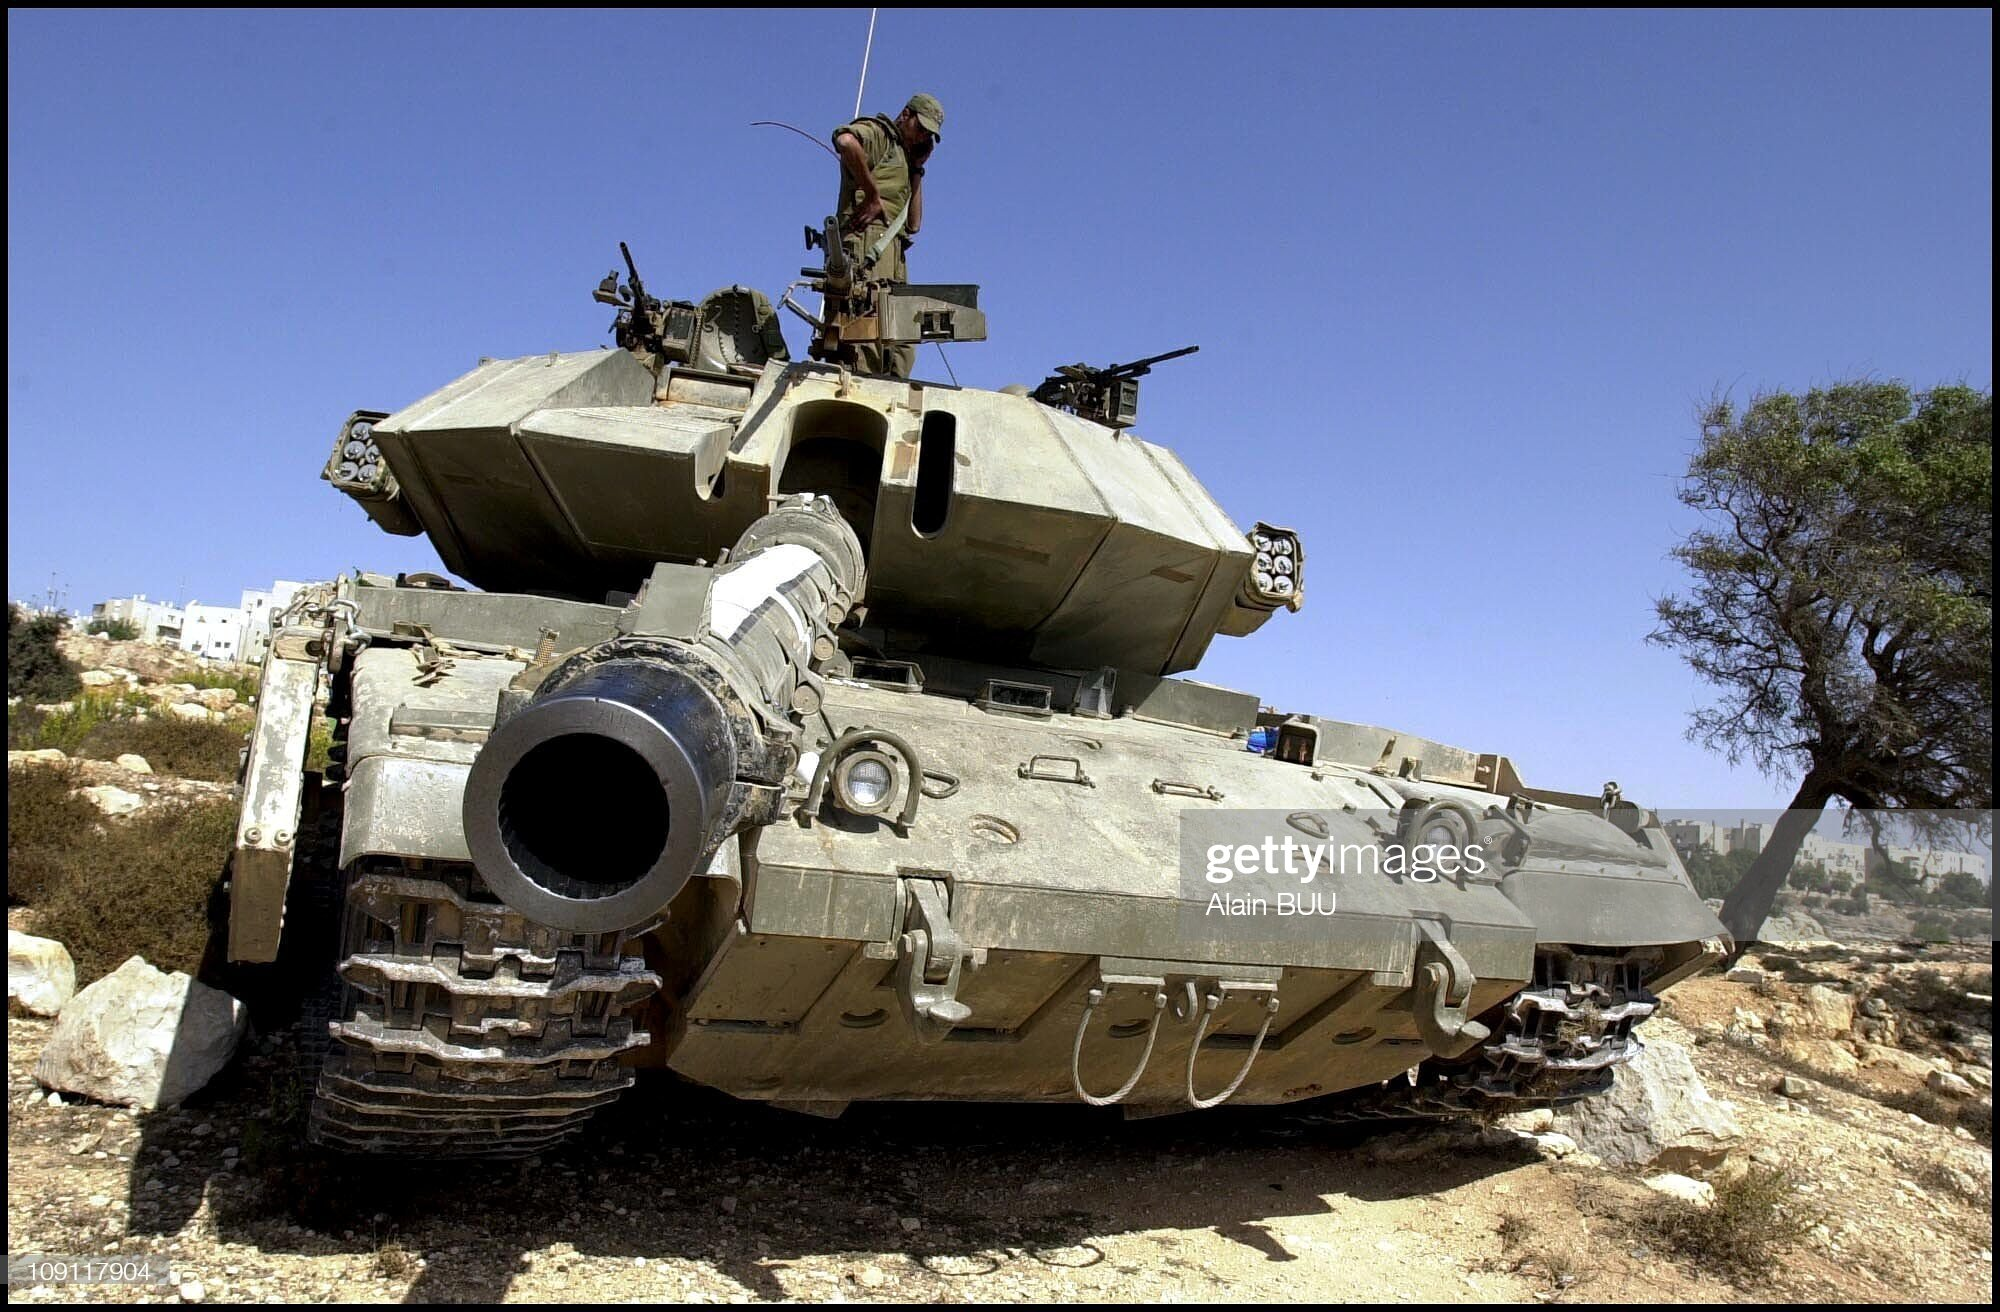 https://media.gettyimages.com/photos/troubles-in-bethlehem-on-august-10th-2000-in-bethleem-israel-israeli-picture-id109117904?s=2048x2048